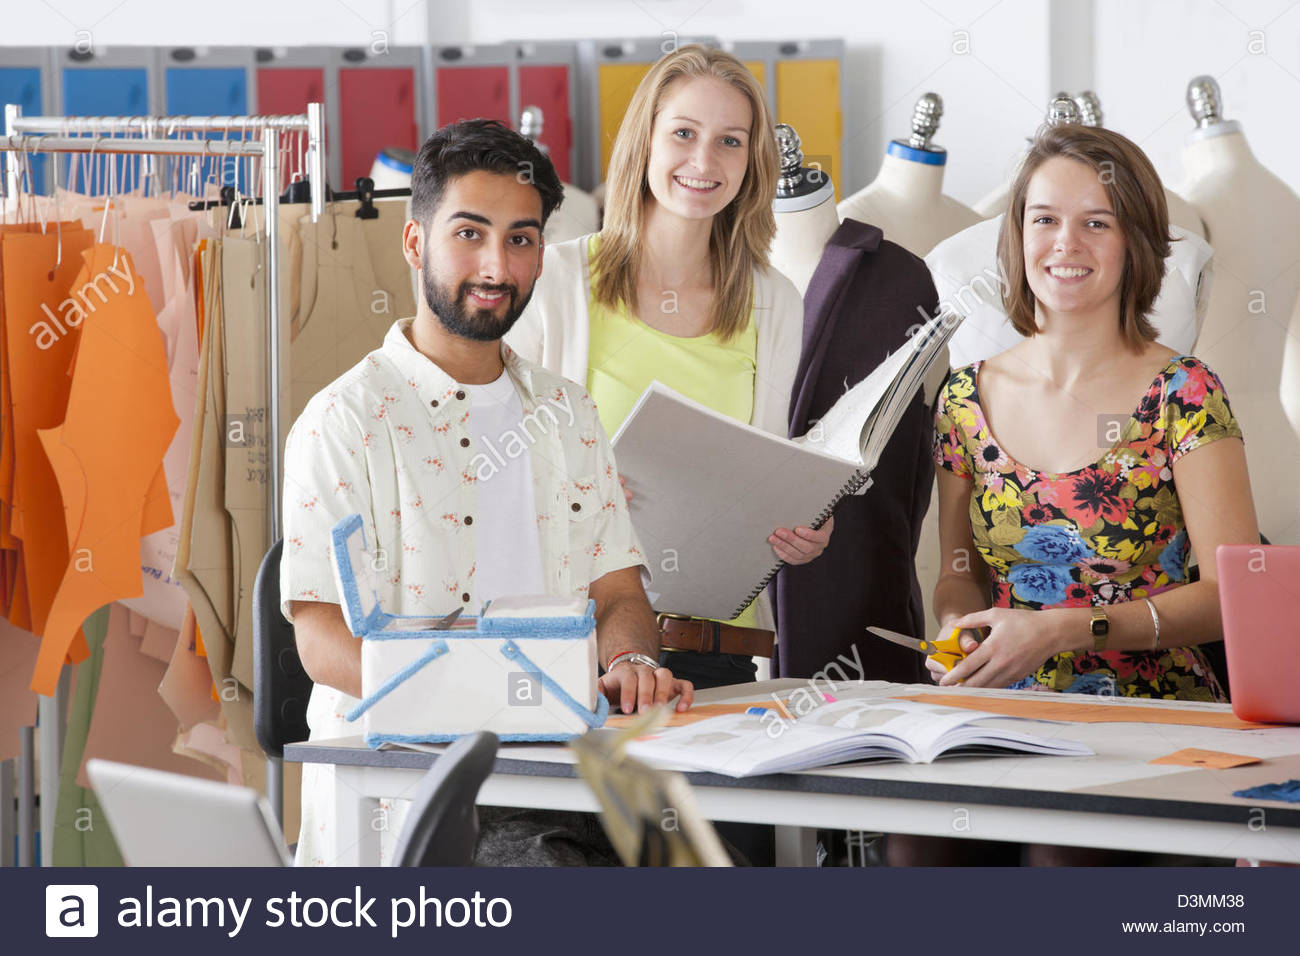 Fashion design students working together in classroom - Stock Image